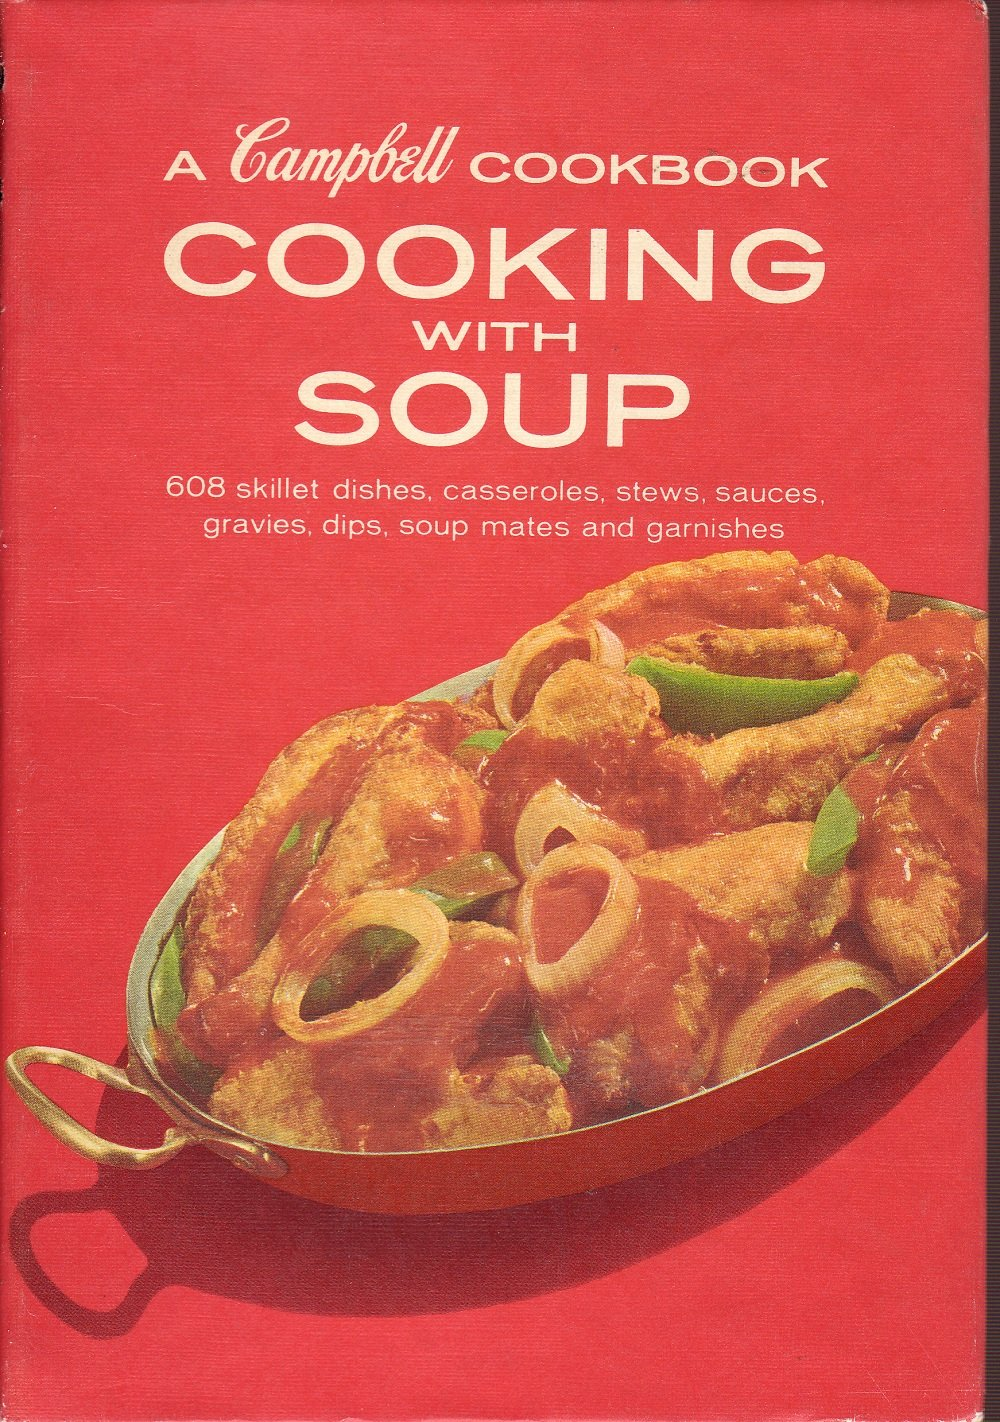 A Campbell Cookbook Cooking With Soup 608 Skillet Dishes